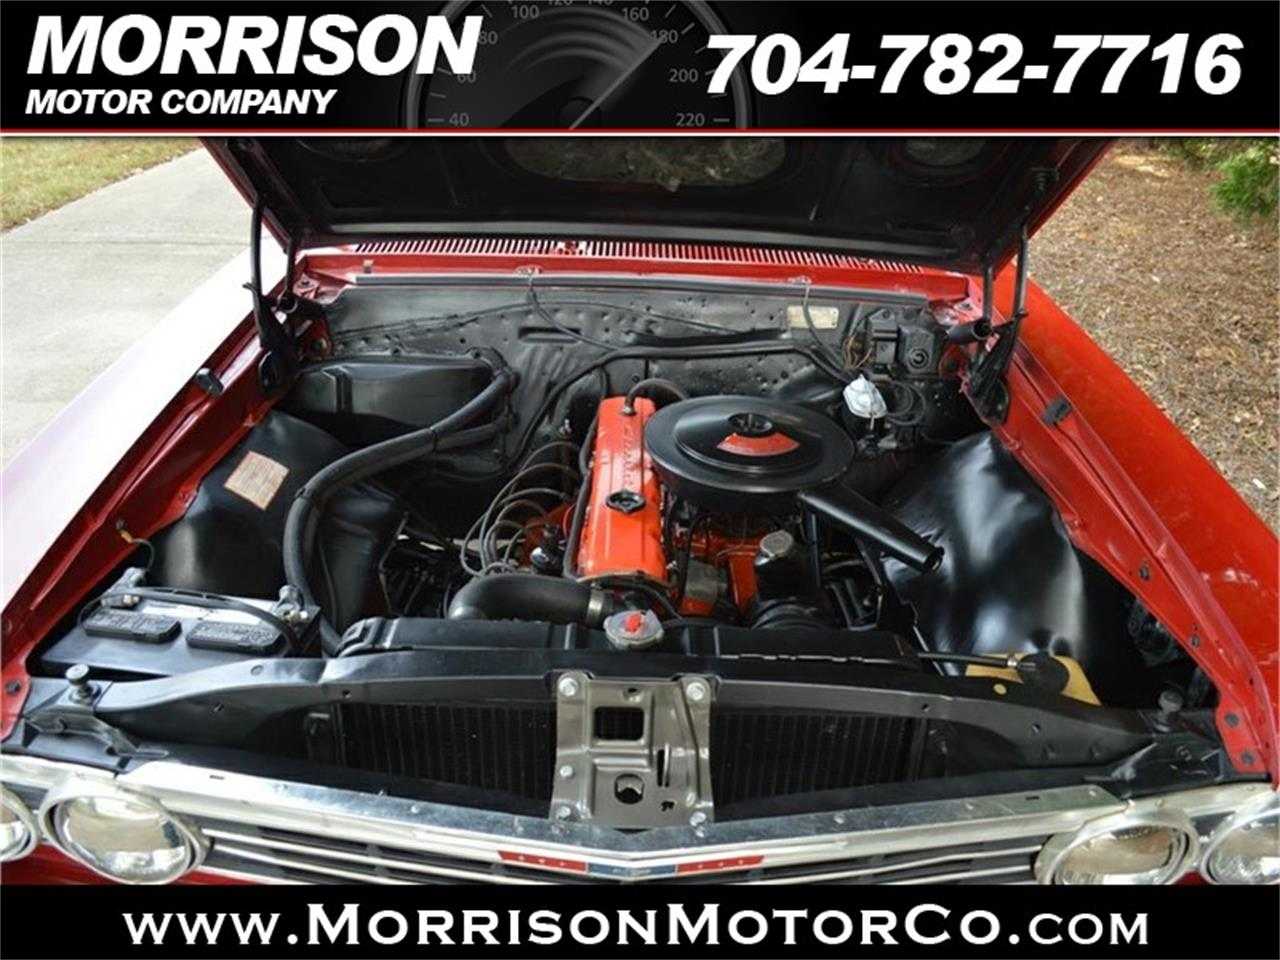 Large Picture of Classic 1967 Chevelle Malibu located in Concord North Carolina - $24,900.00 Offered by Morrison Motor Company - P626